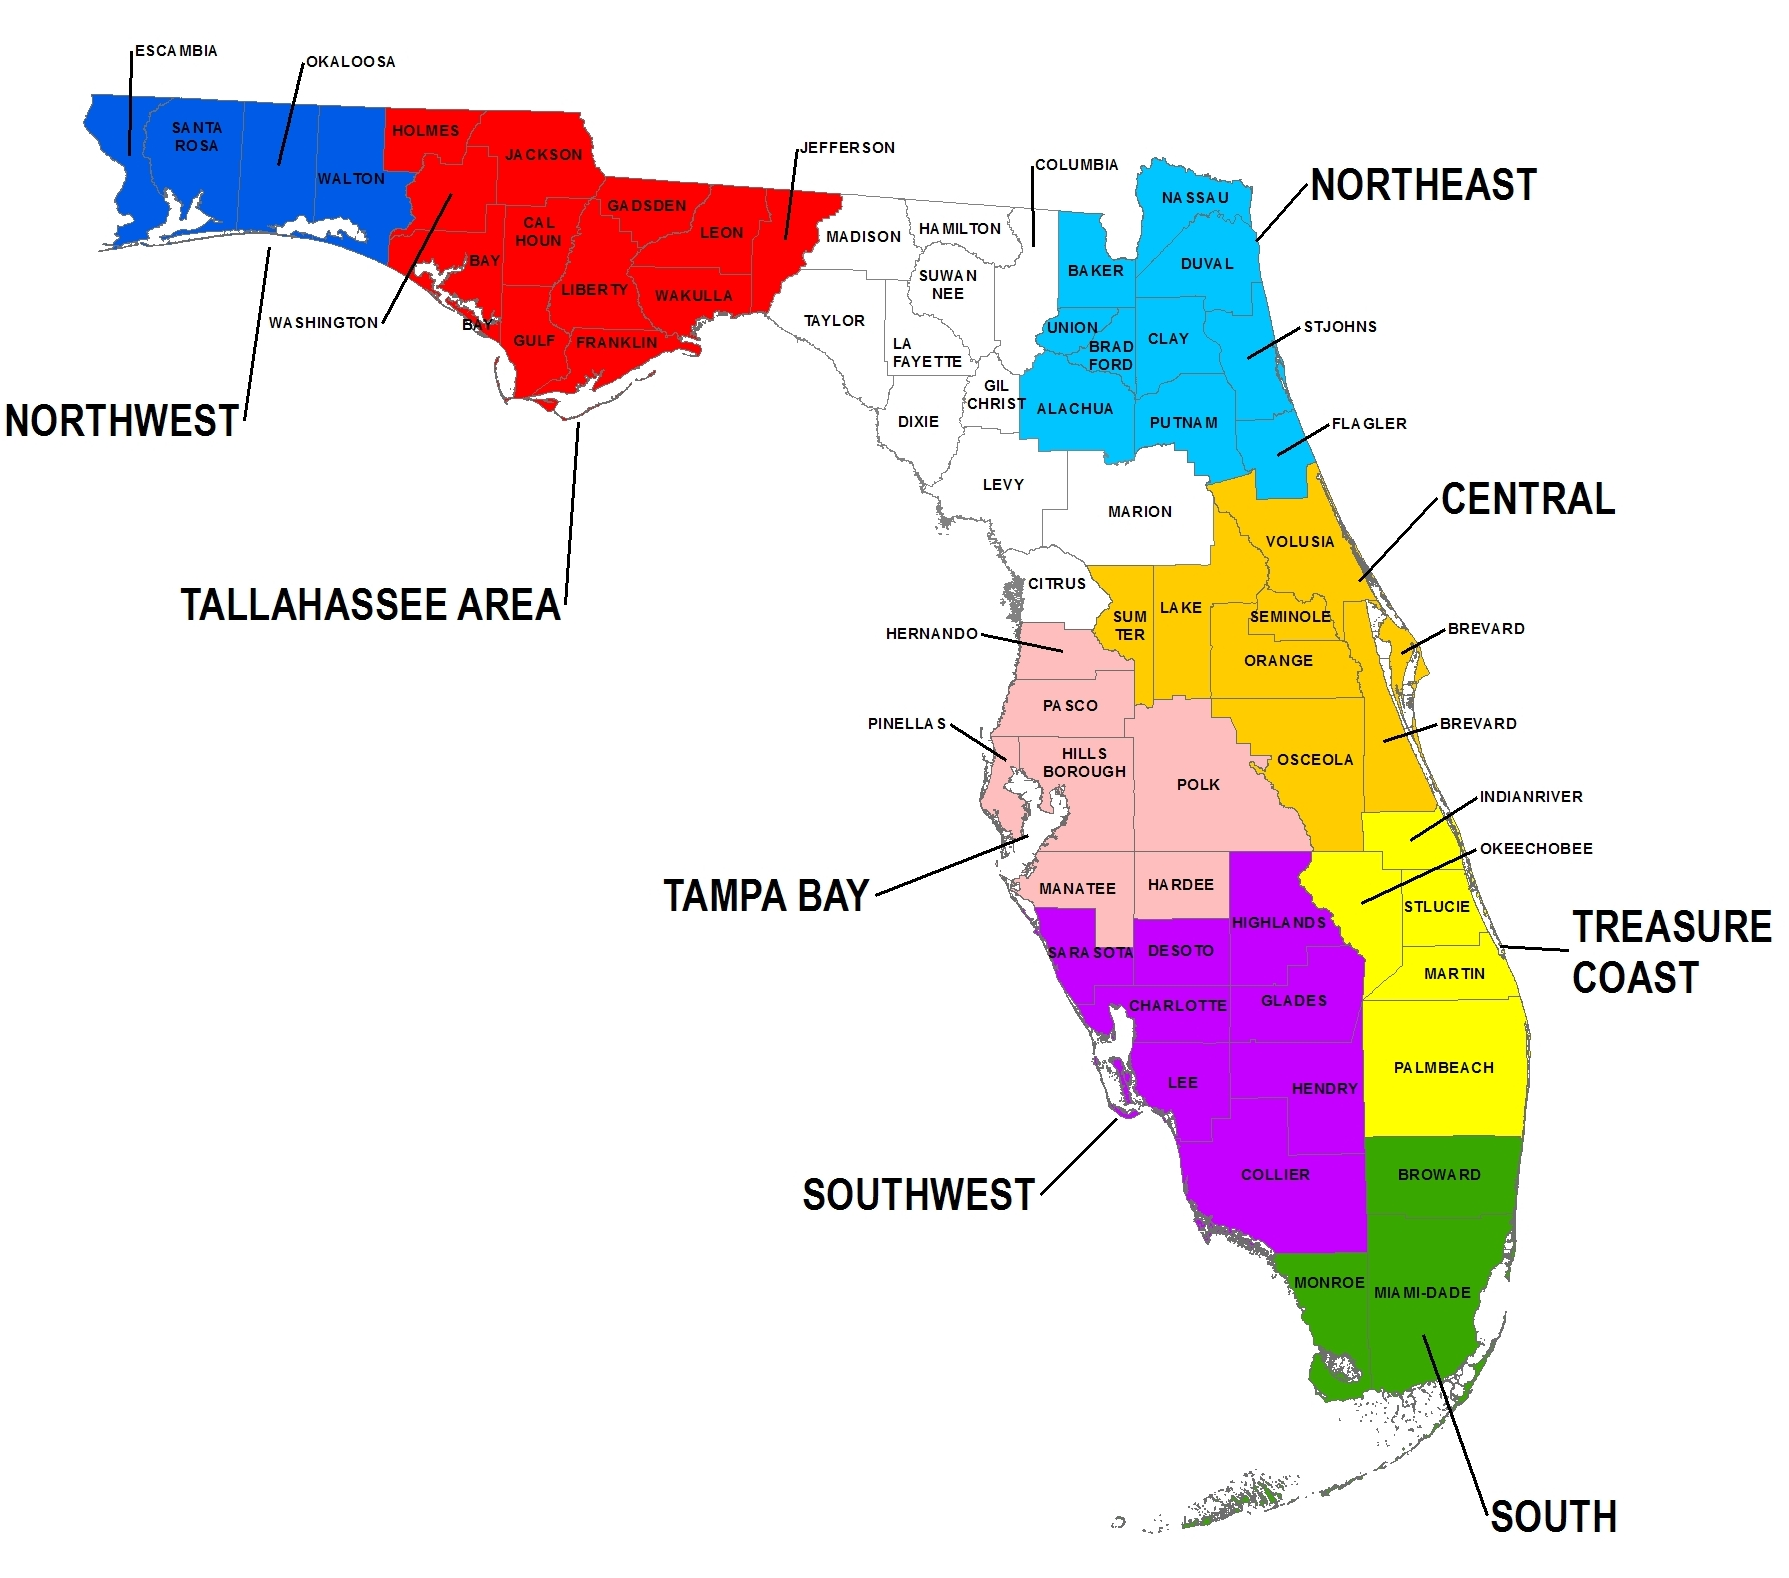 Florida Southwest Fl Map Viscom Sign Language Interpreting Services